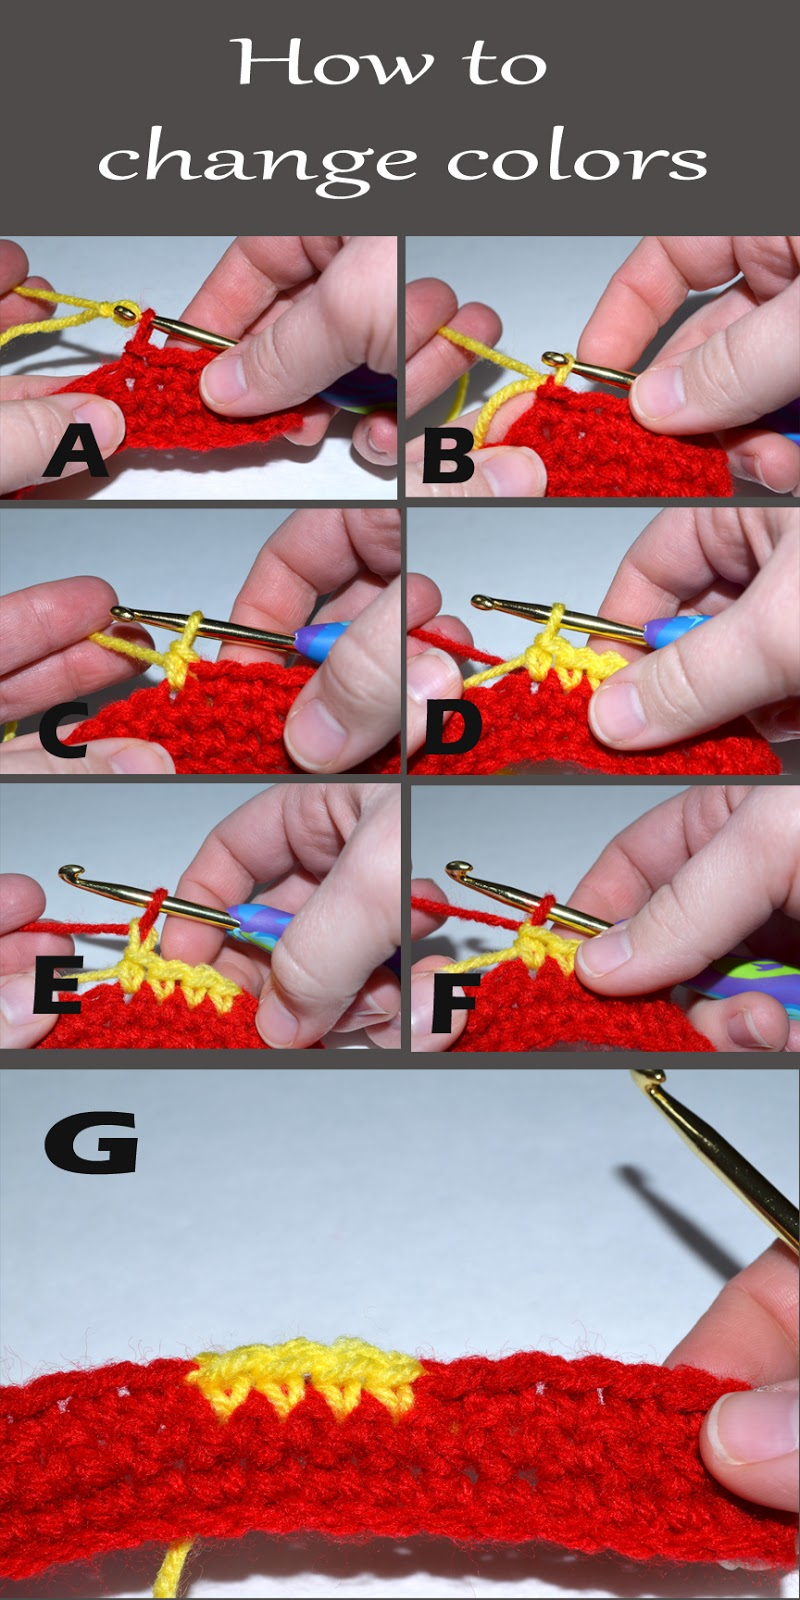 Crocheting How To Change Colors : Pull the new color through the loop and tighten up both colors ...